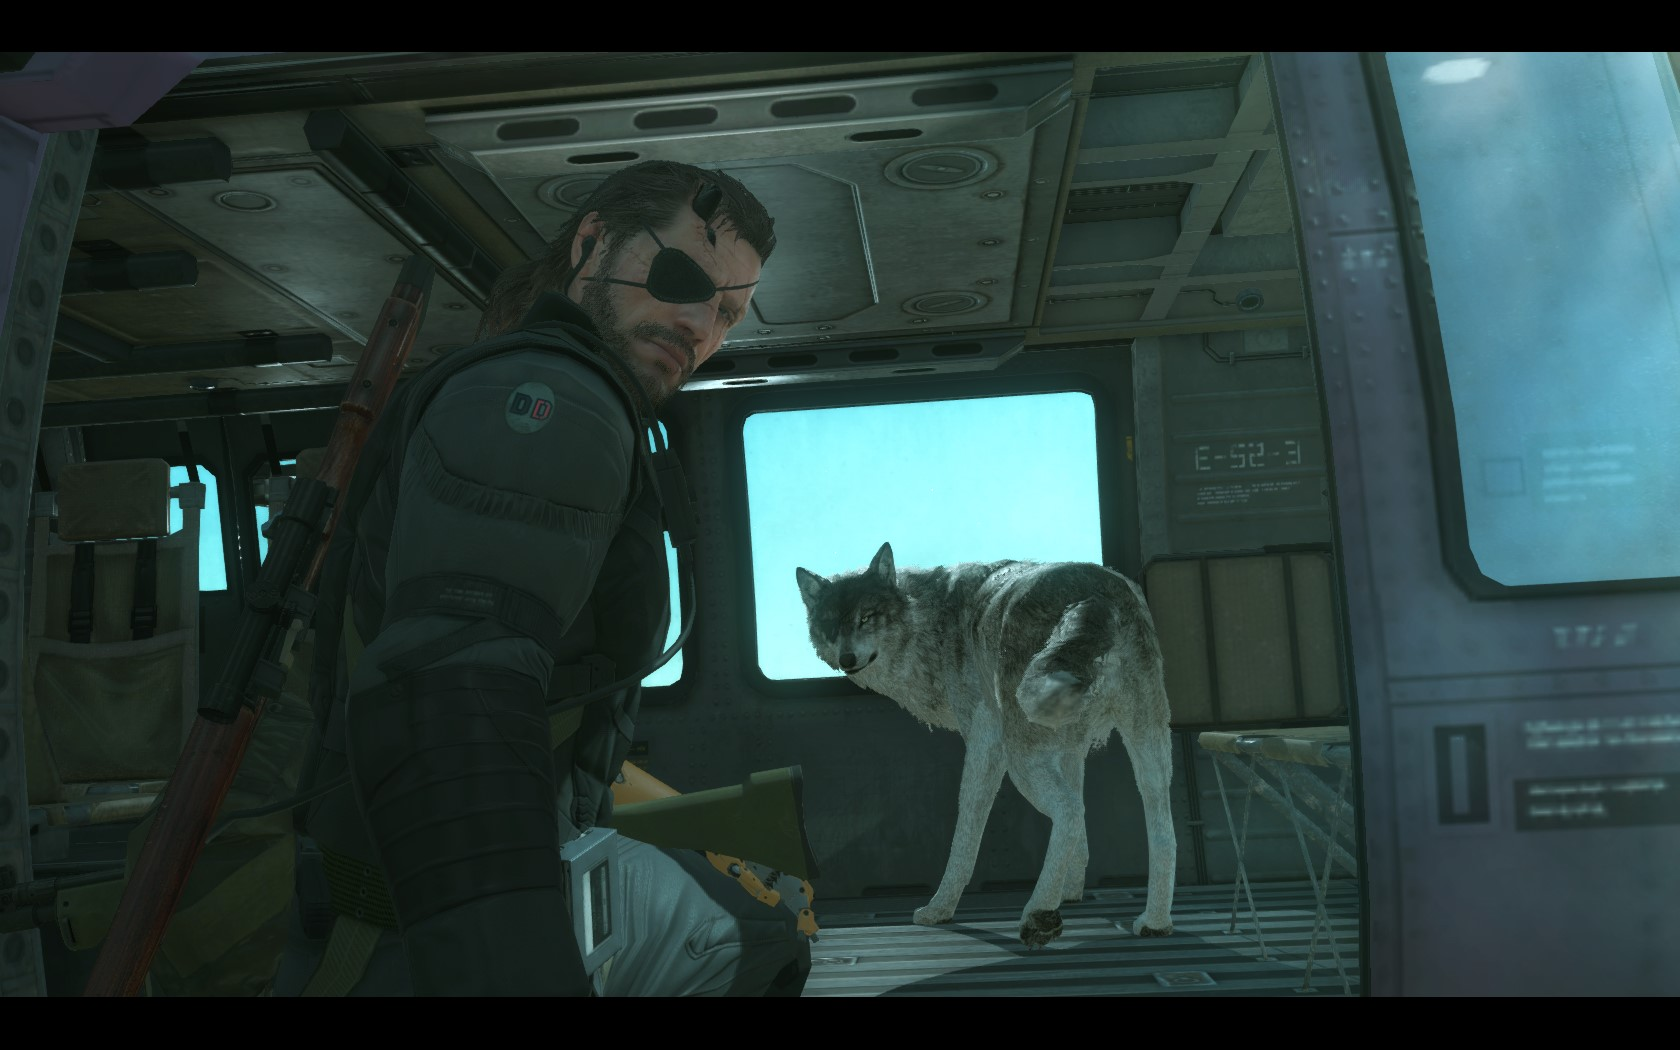 Metal_Gear_Solid_5_screenshot_002